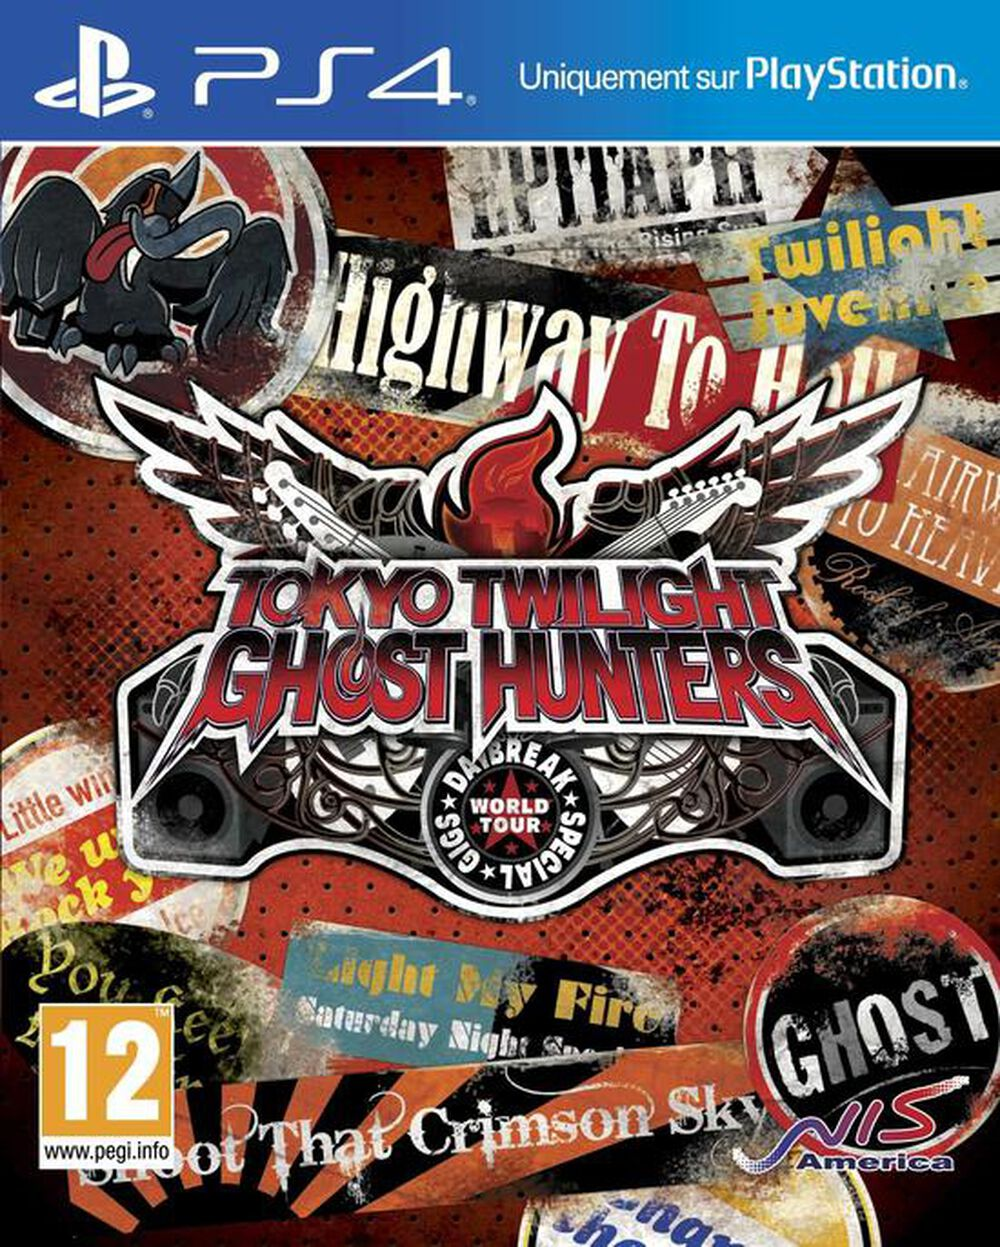 Tokyo Twilight Ghost Hunters Daybreak Special Gigs World Tour